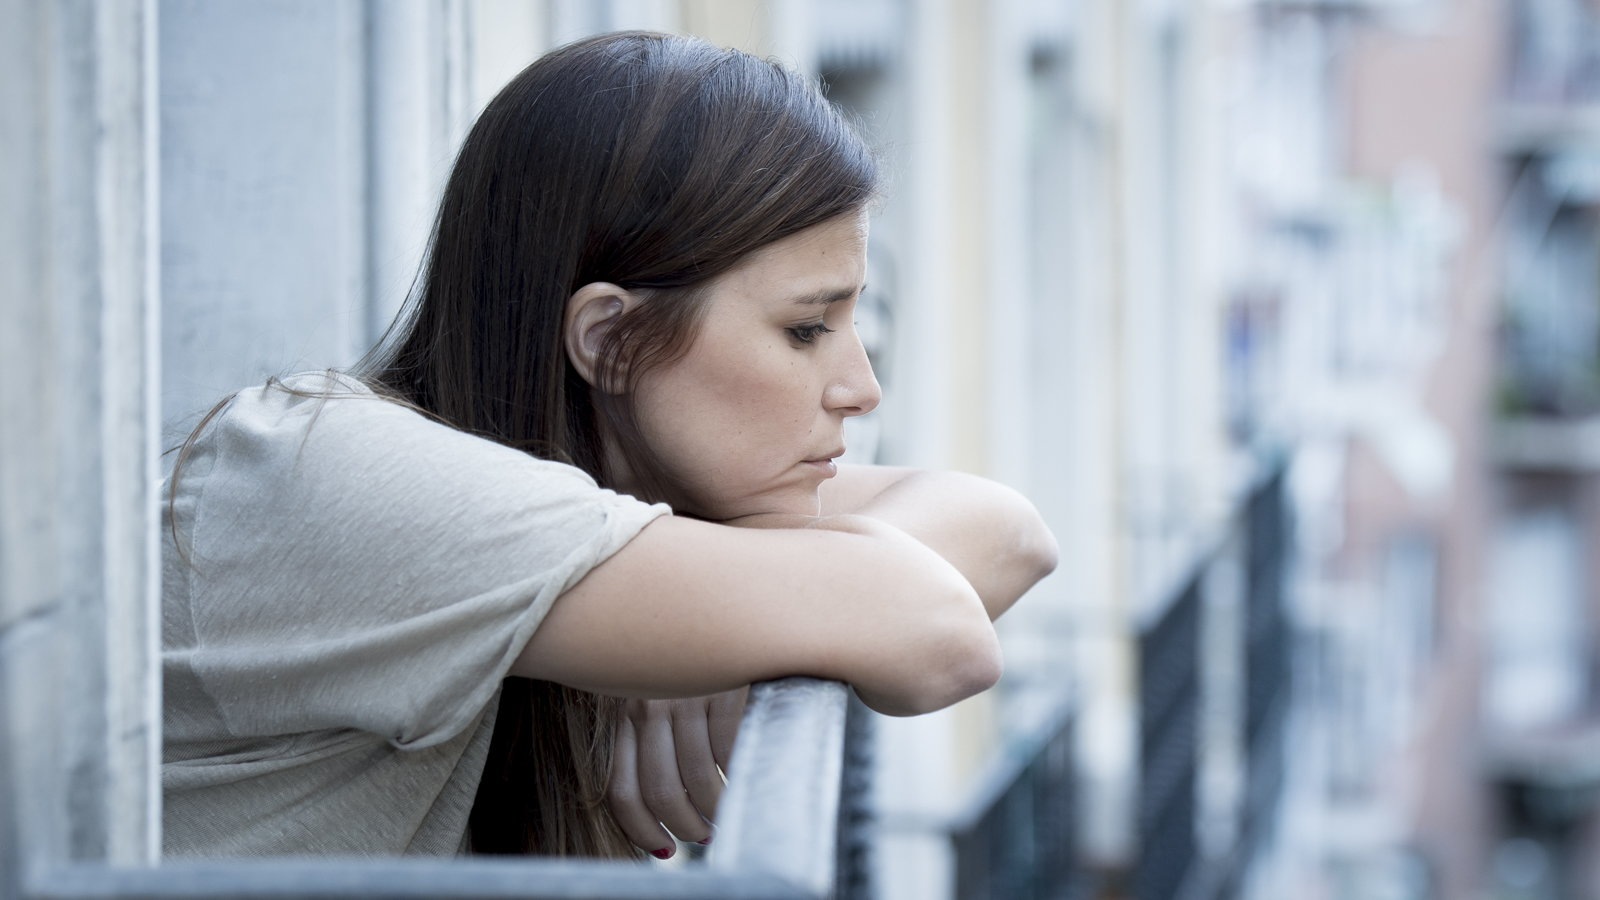 sad woman looking out from balcony